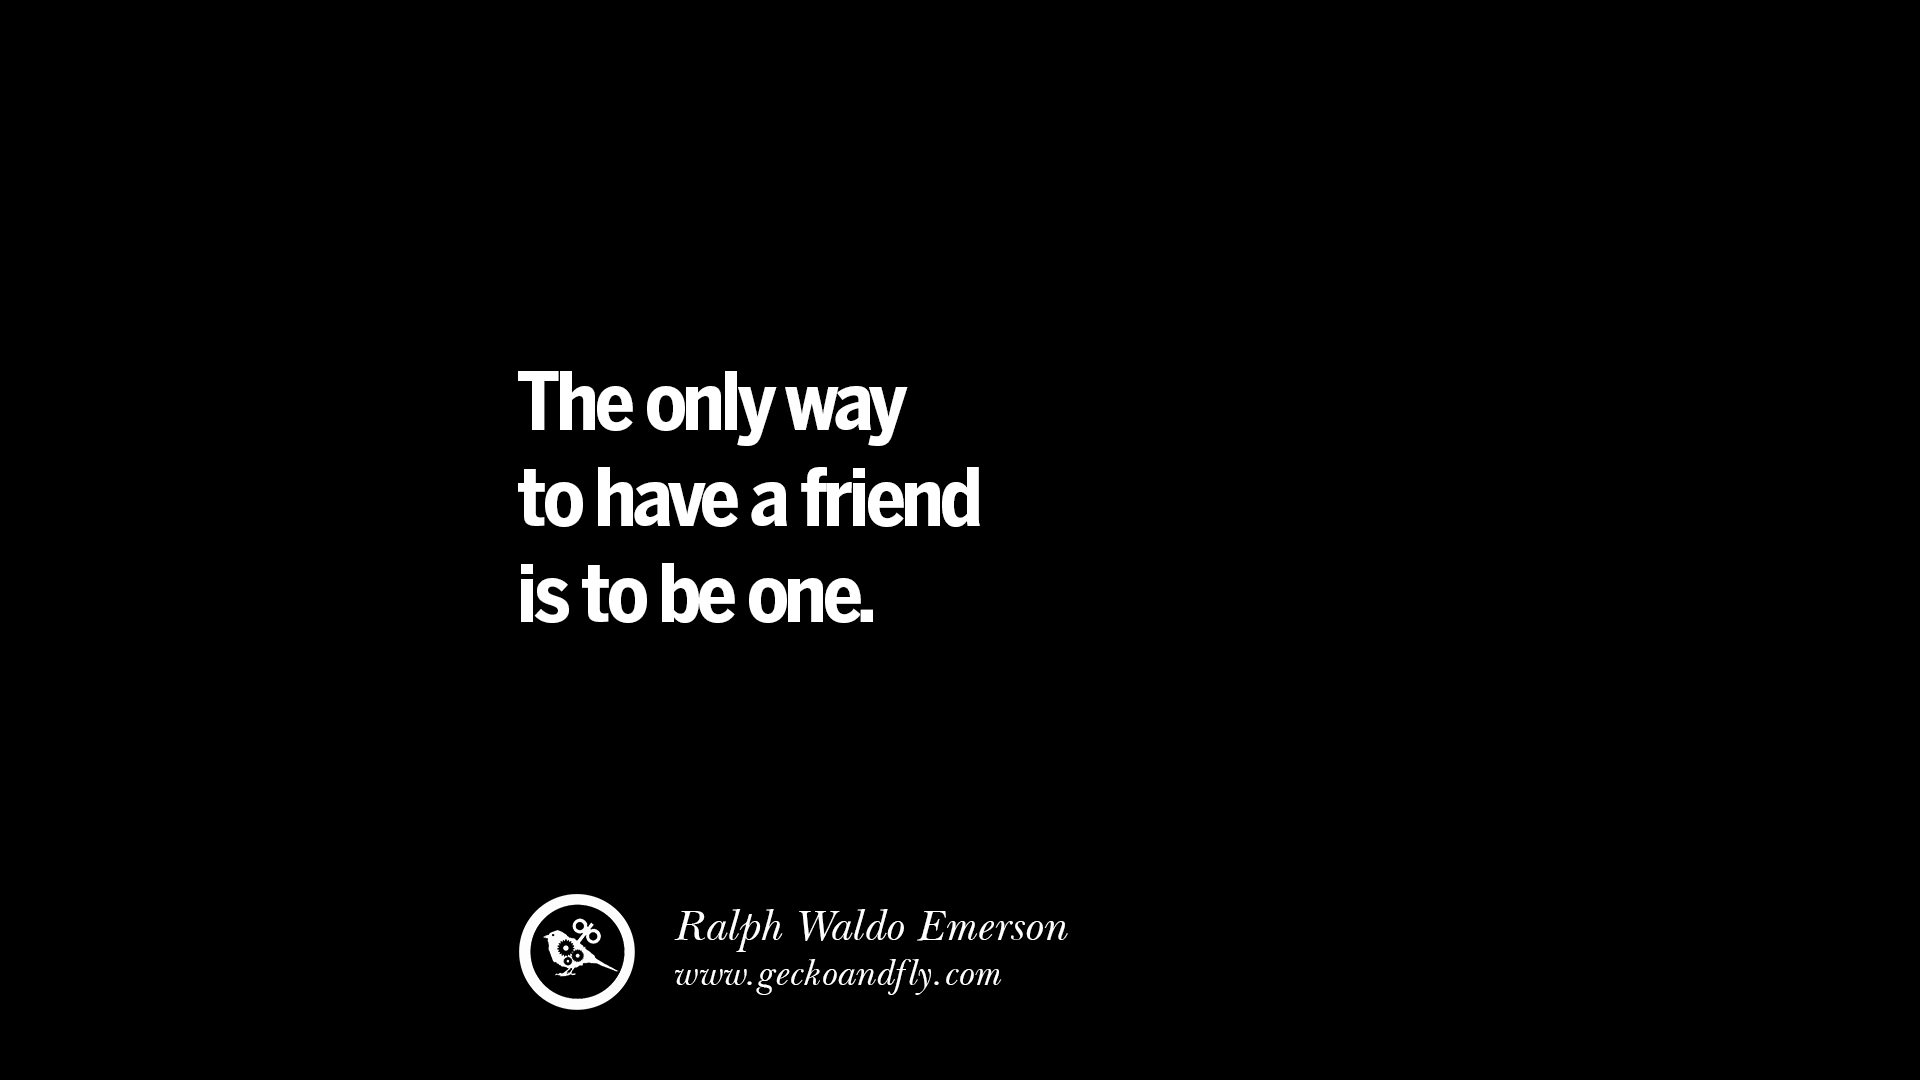 Funny Quotes About Friendship And Memories 20 Amazing Quotes About Friendship Love And Friends  Geckoandfly 2018